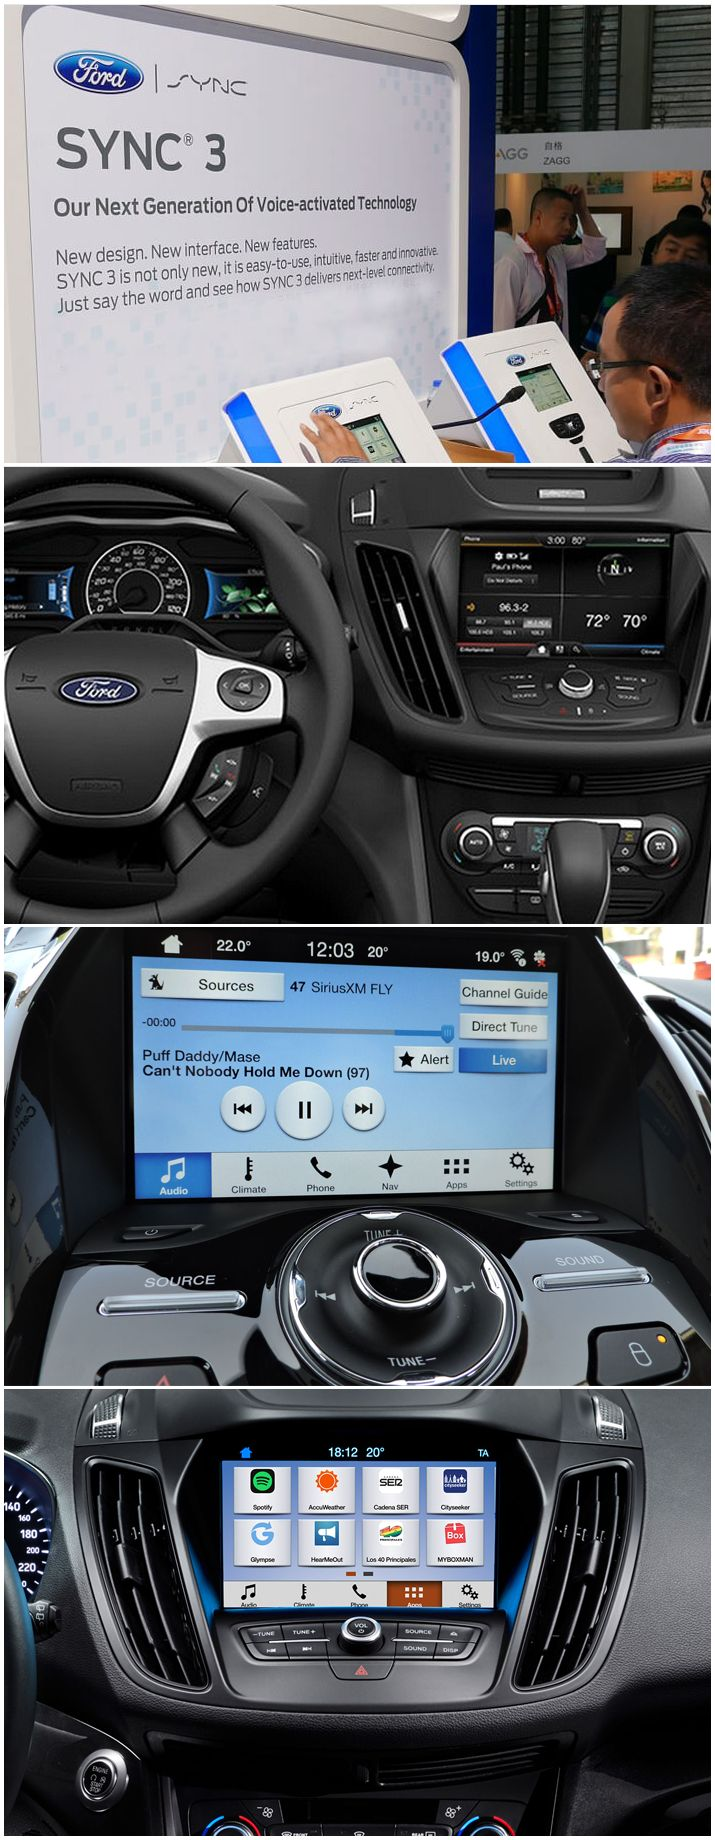 Europe to enjoy ford sync_3 this summer for more information visit link http